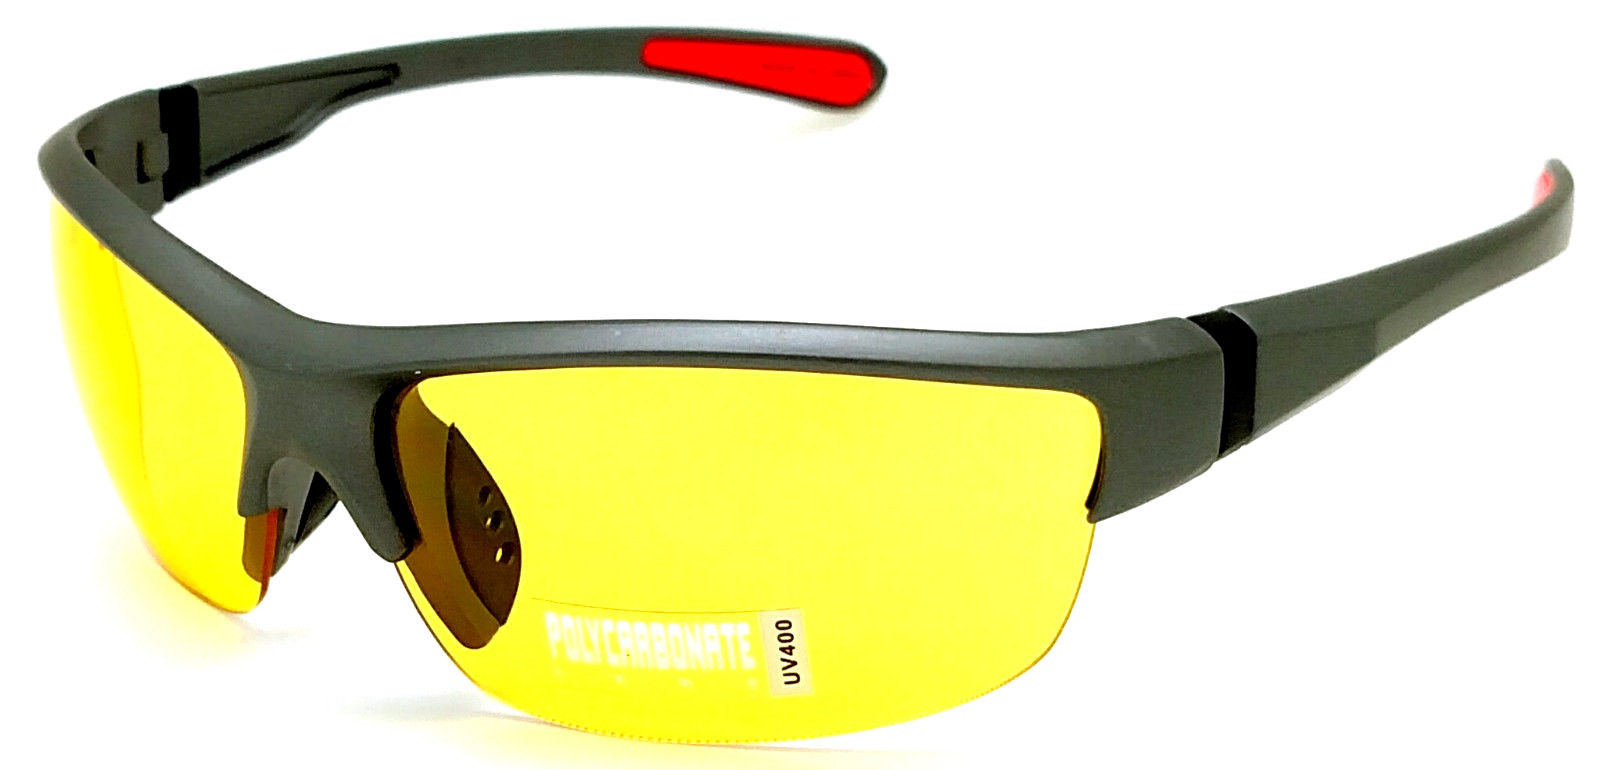 FOCUS ANTI-GLARE Night Driving Glasses Hi-Def Yellow Lens Reduces Glare Blade